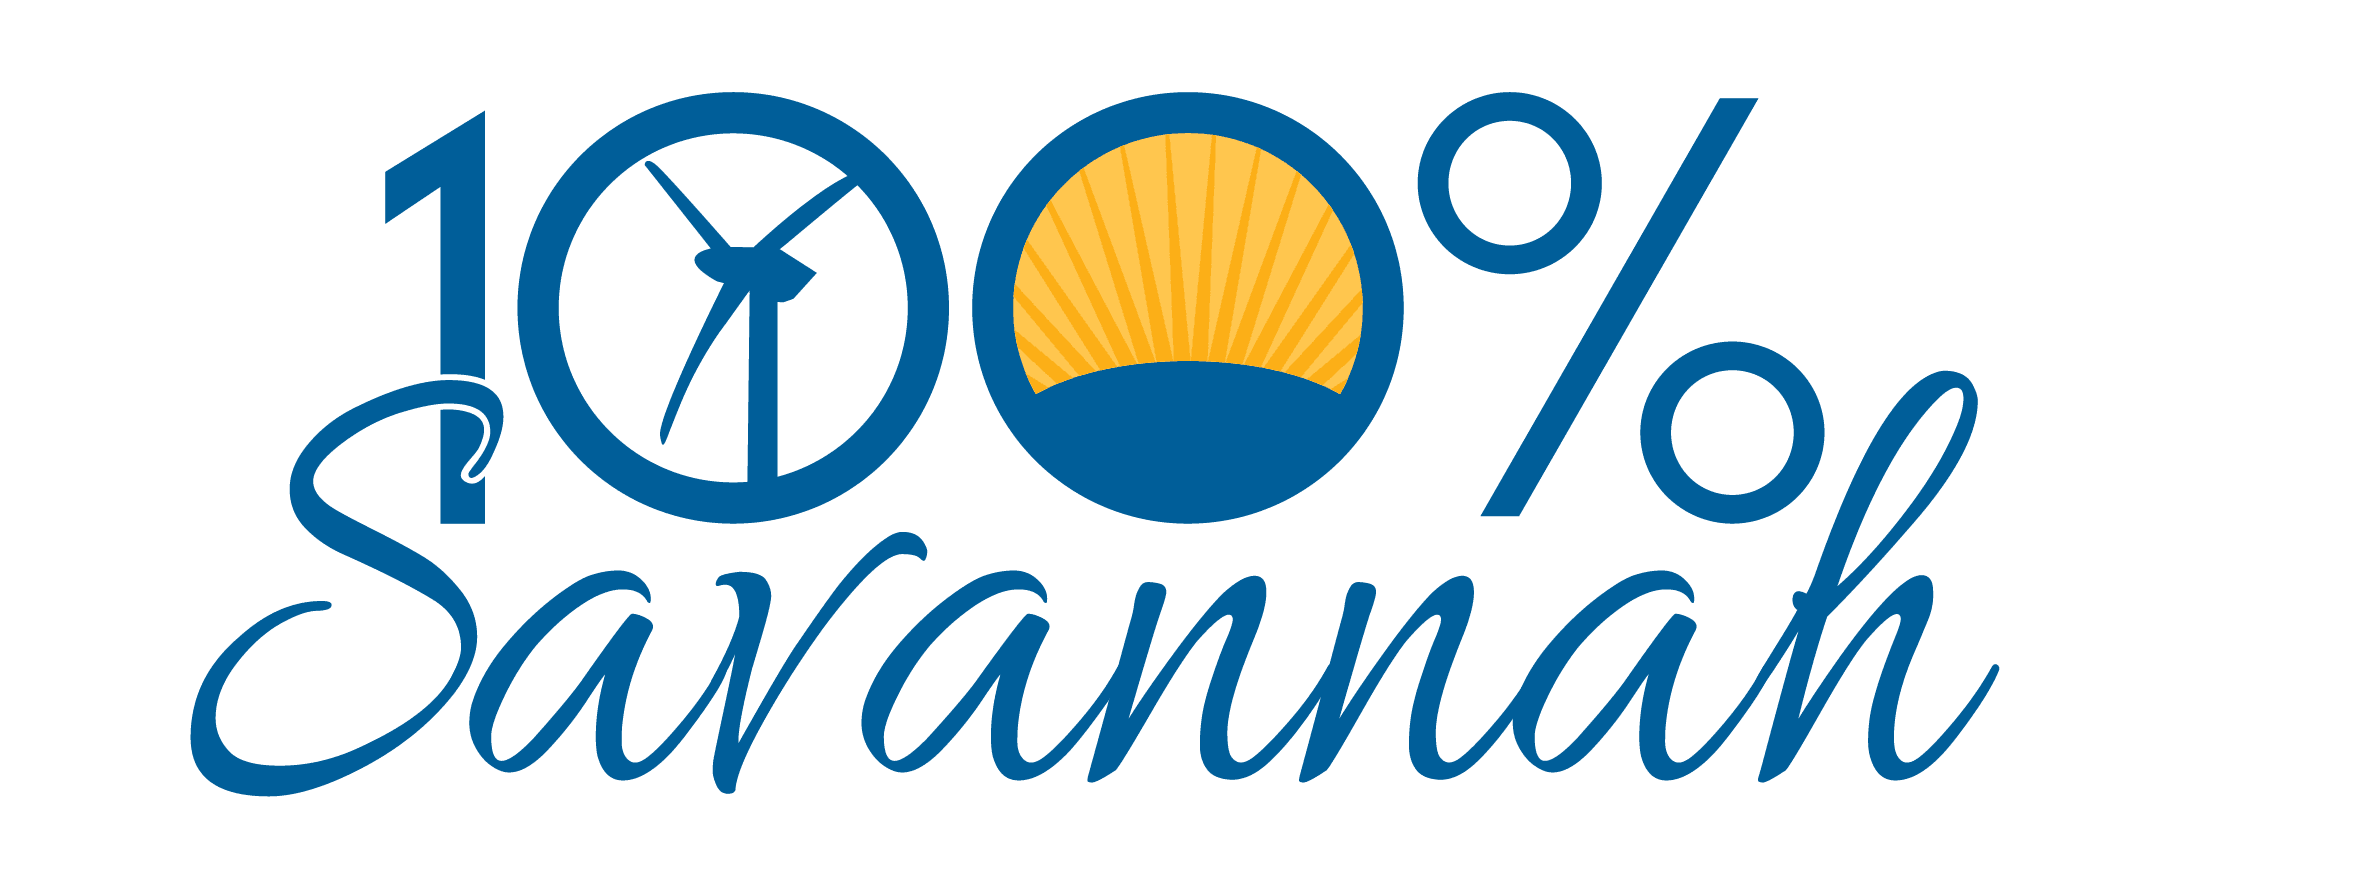 100 percent savannah logo